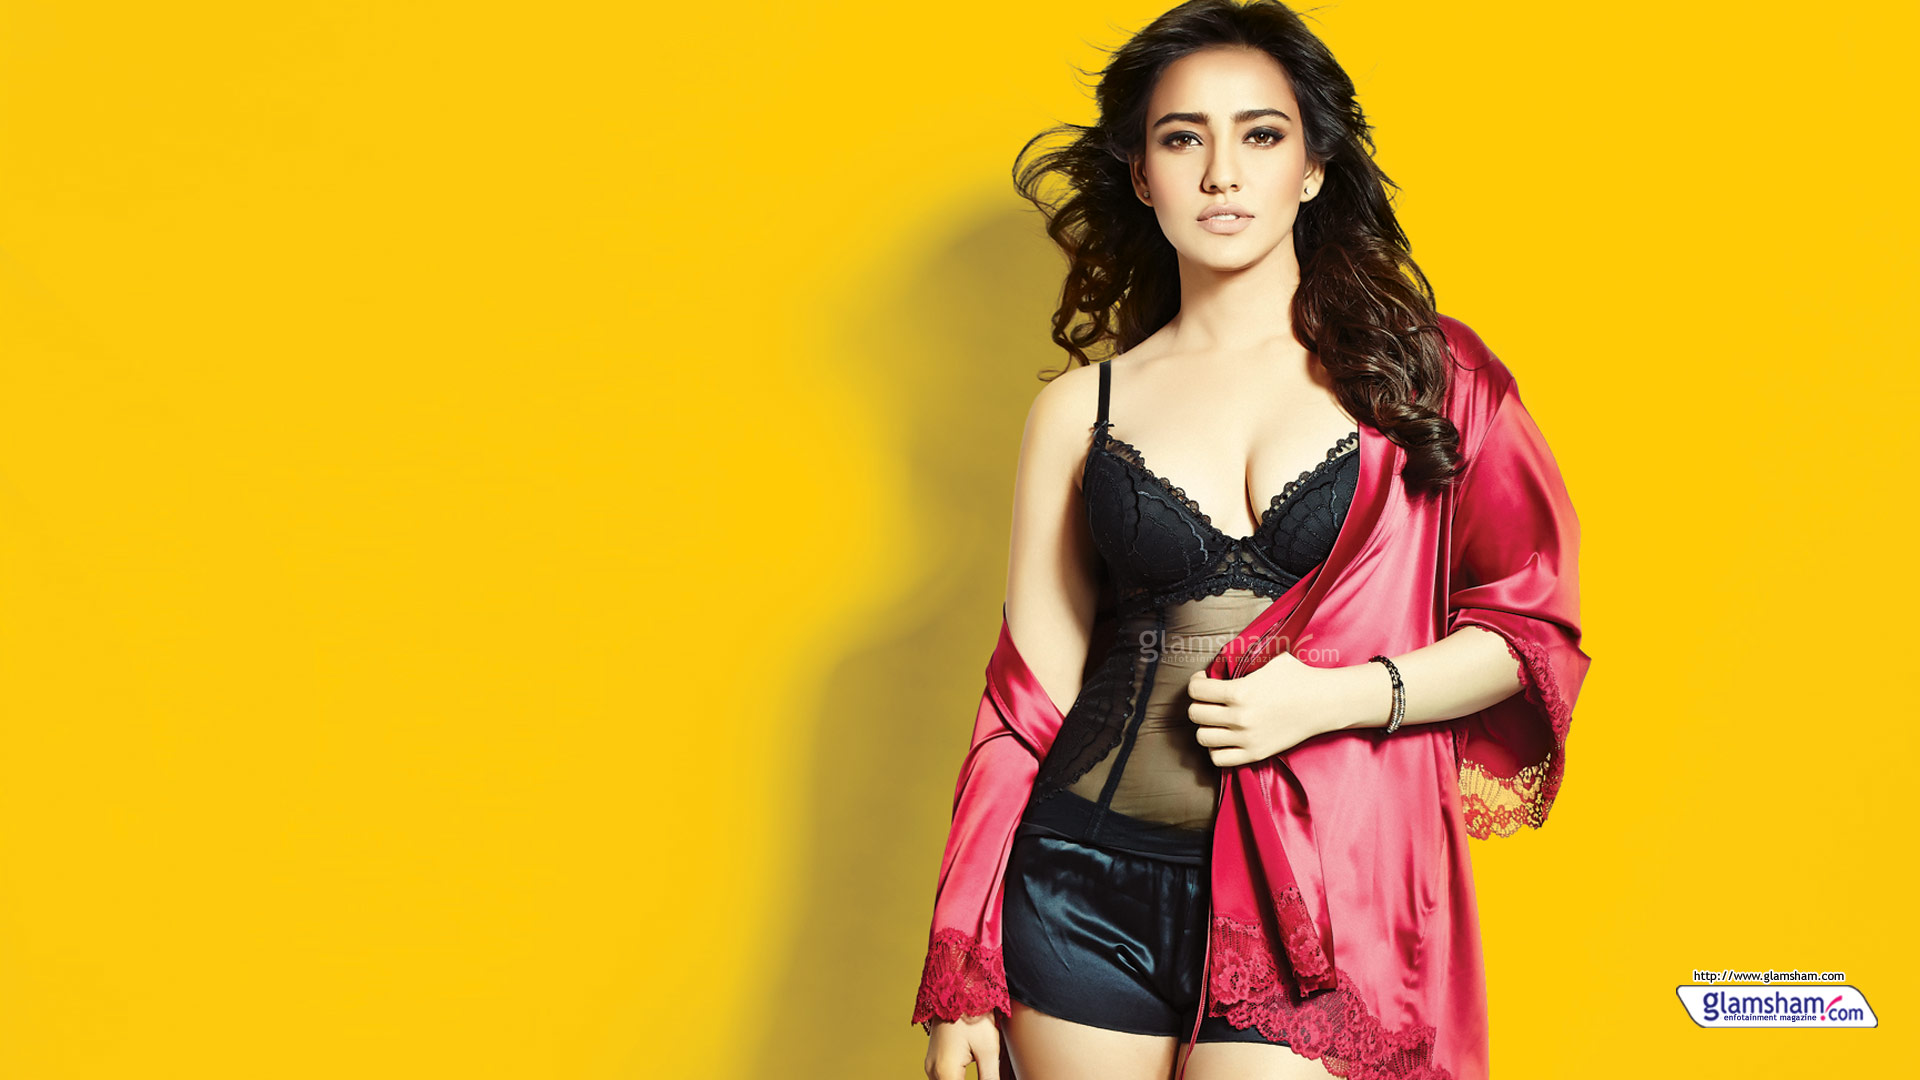 Neha Sharma Wallpapers & Bio